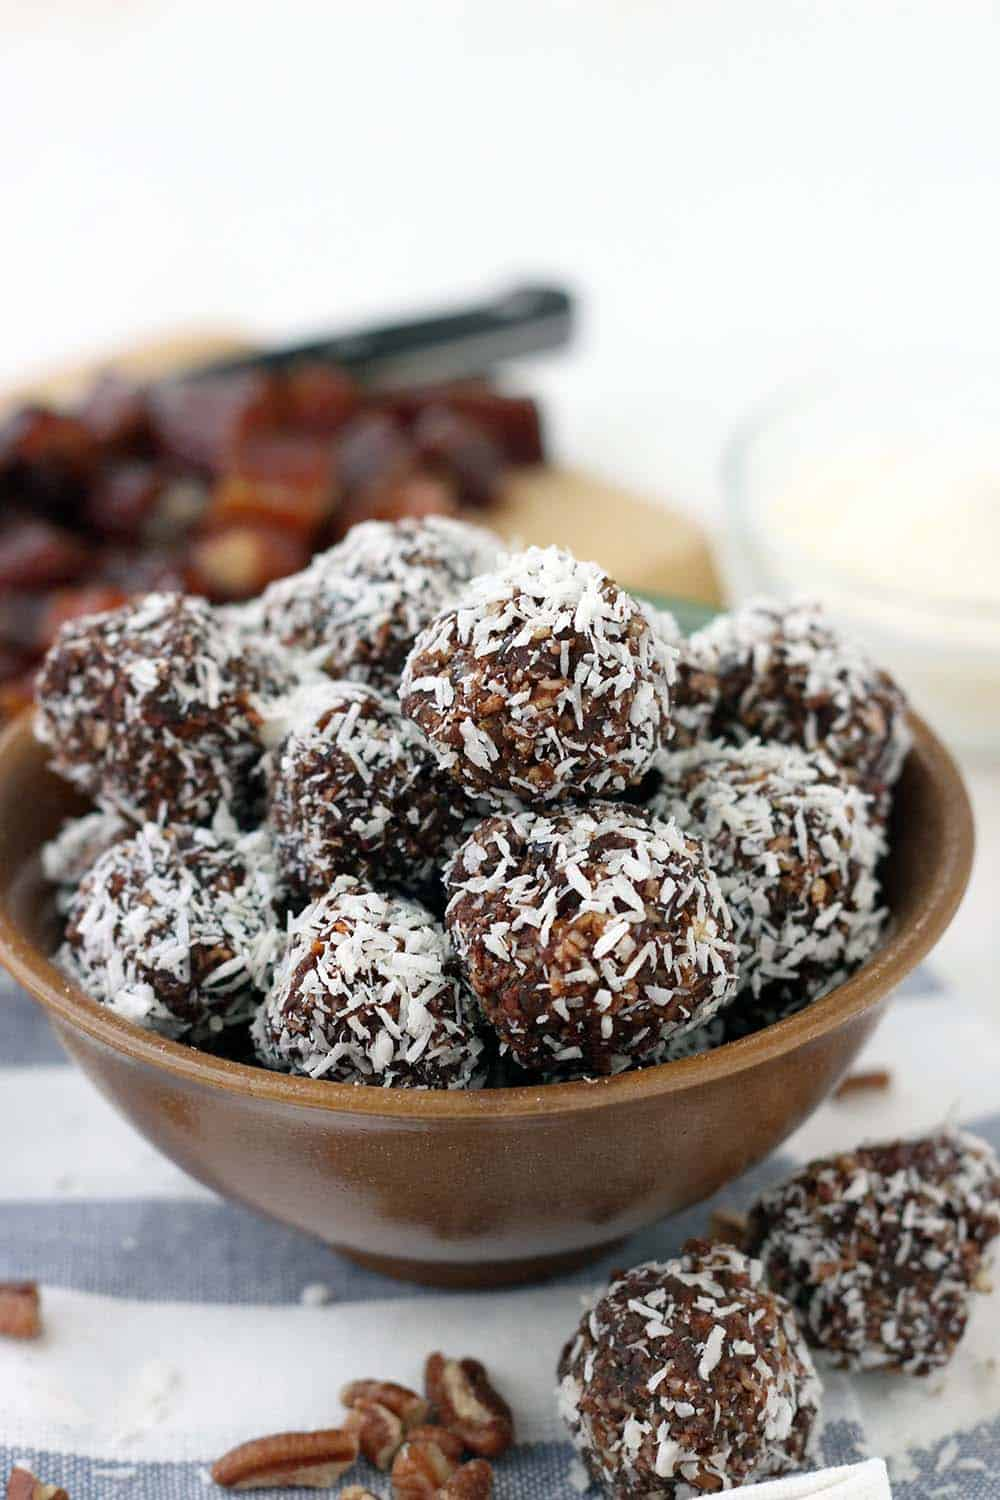 These Whole30 / Paleo chocolate coconut energy balls are an amazing midday snack and energy boost! Sweetened only with dates and super easy to make, they taste decadent, similar to an almond joy, but are 100% guilt-free.